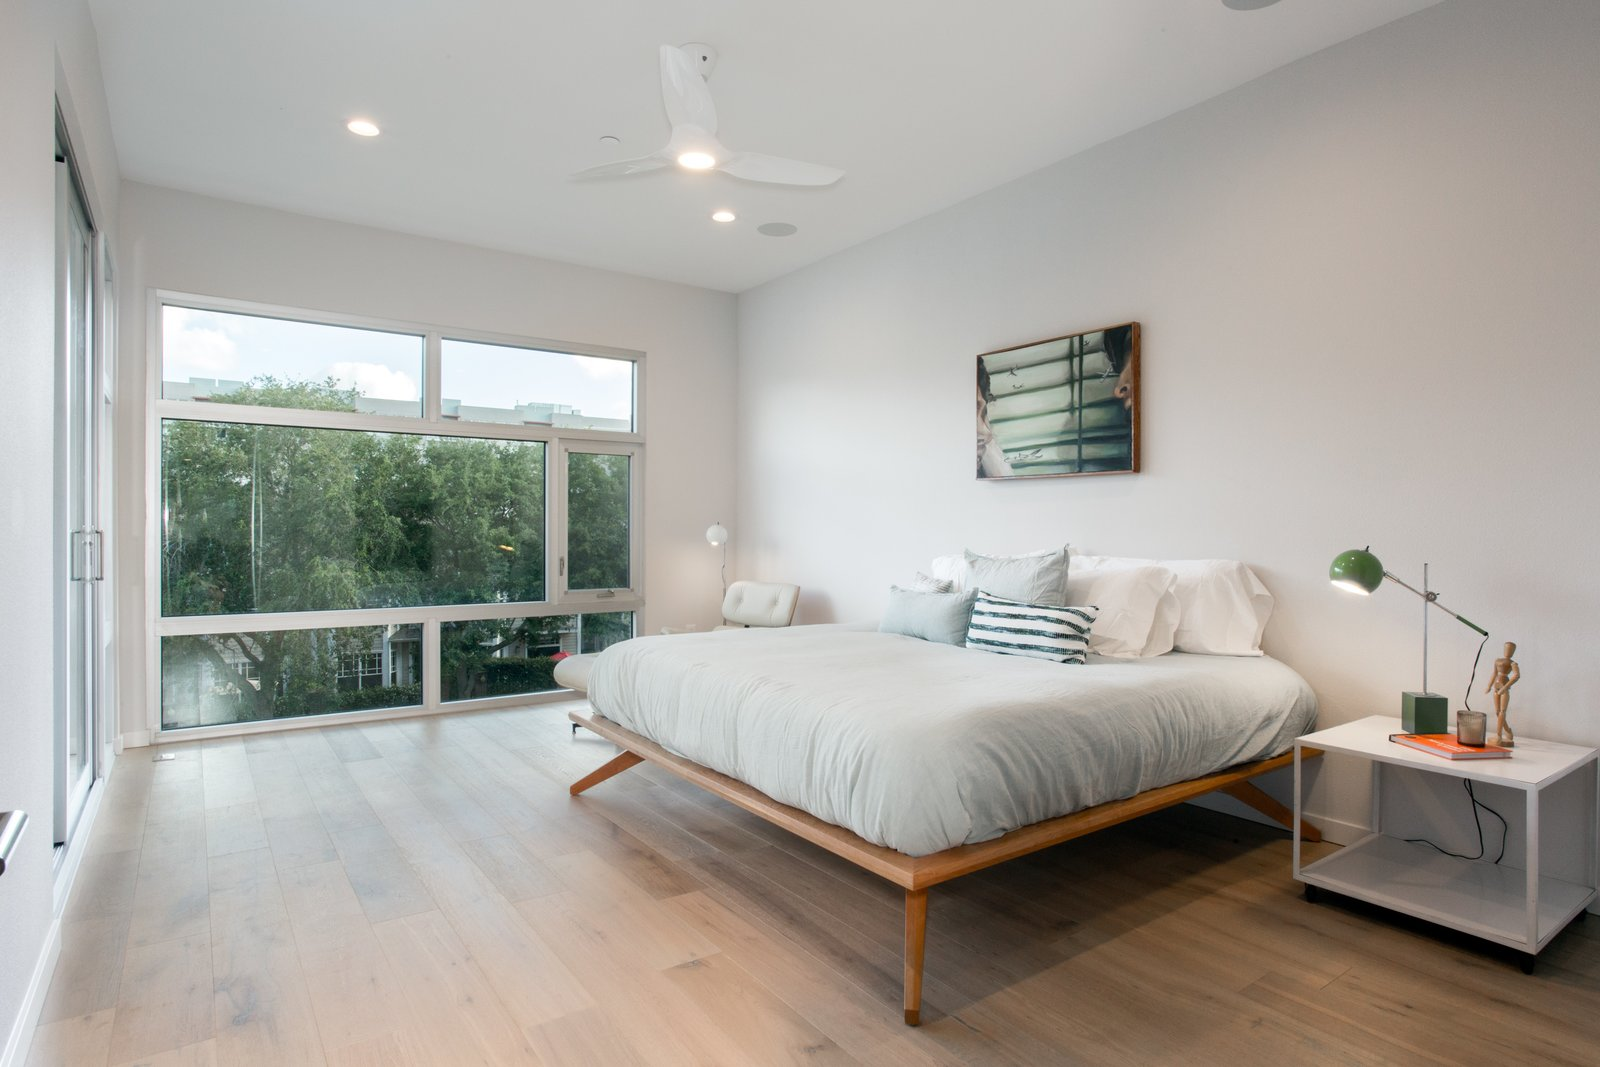 Master Bedroom in the Trees.  LIV233 by Hudson Harr